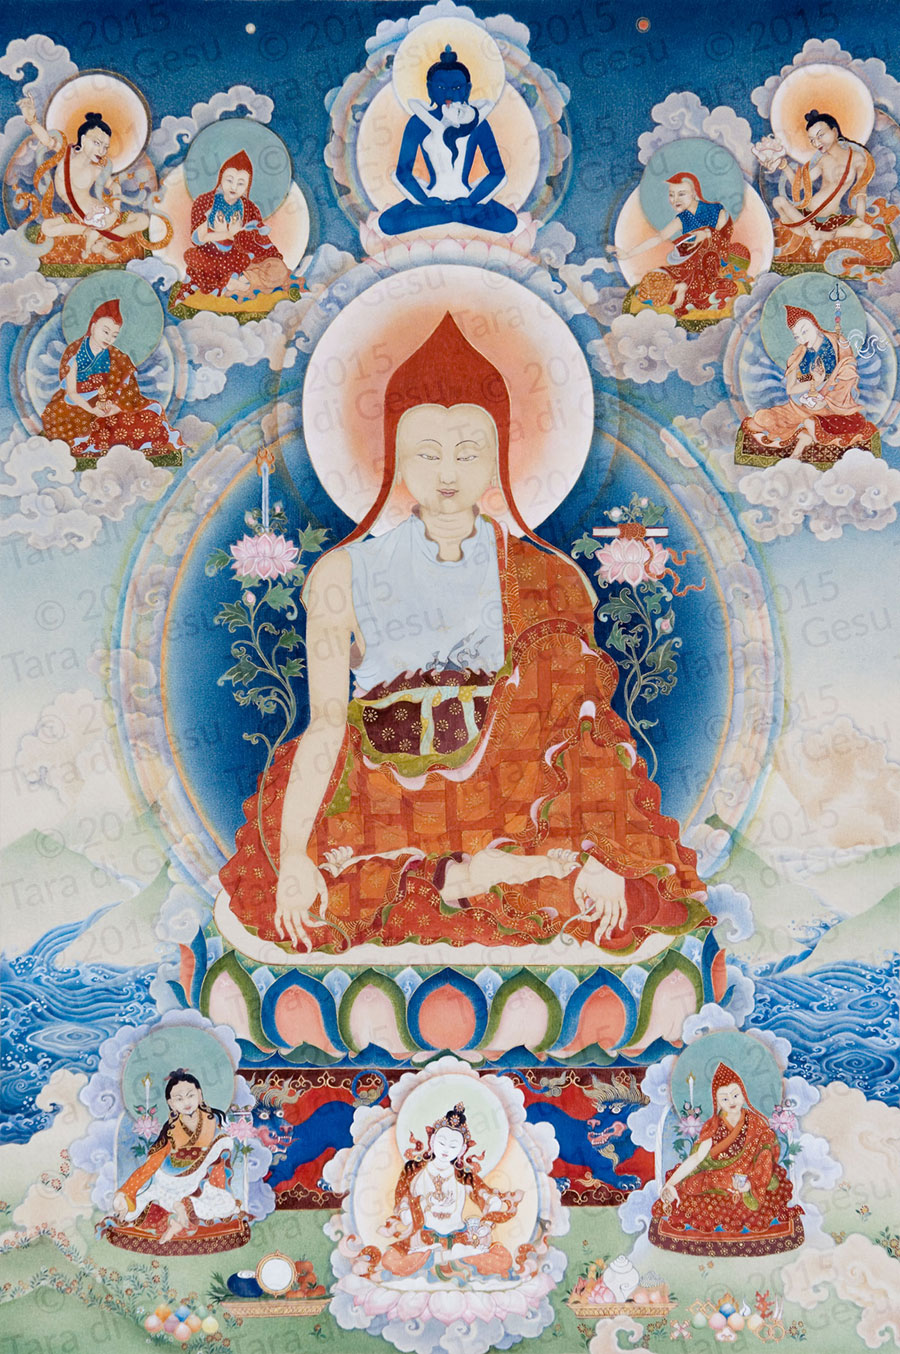 Longchenpa: Whatever thoughts arise, recognizing their essence, allow them all to be liberated as the display of your own intrinsic nature.